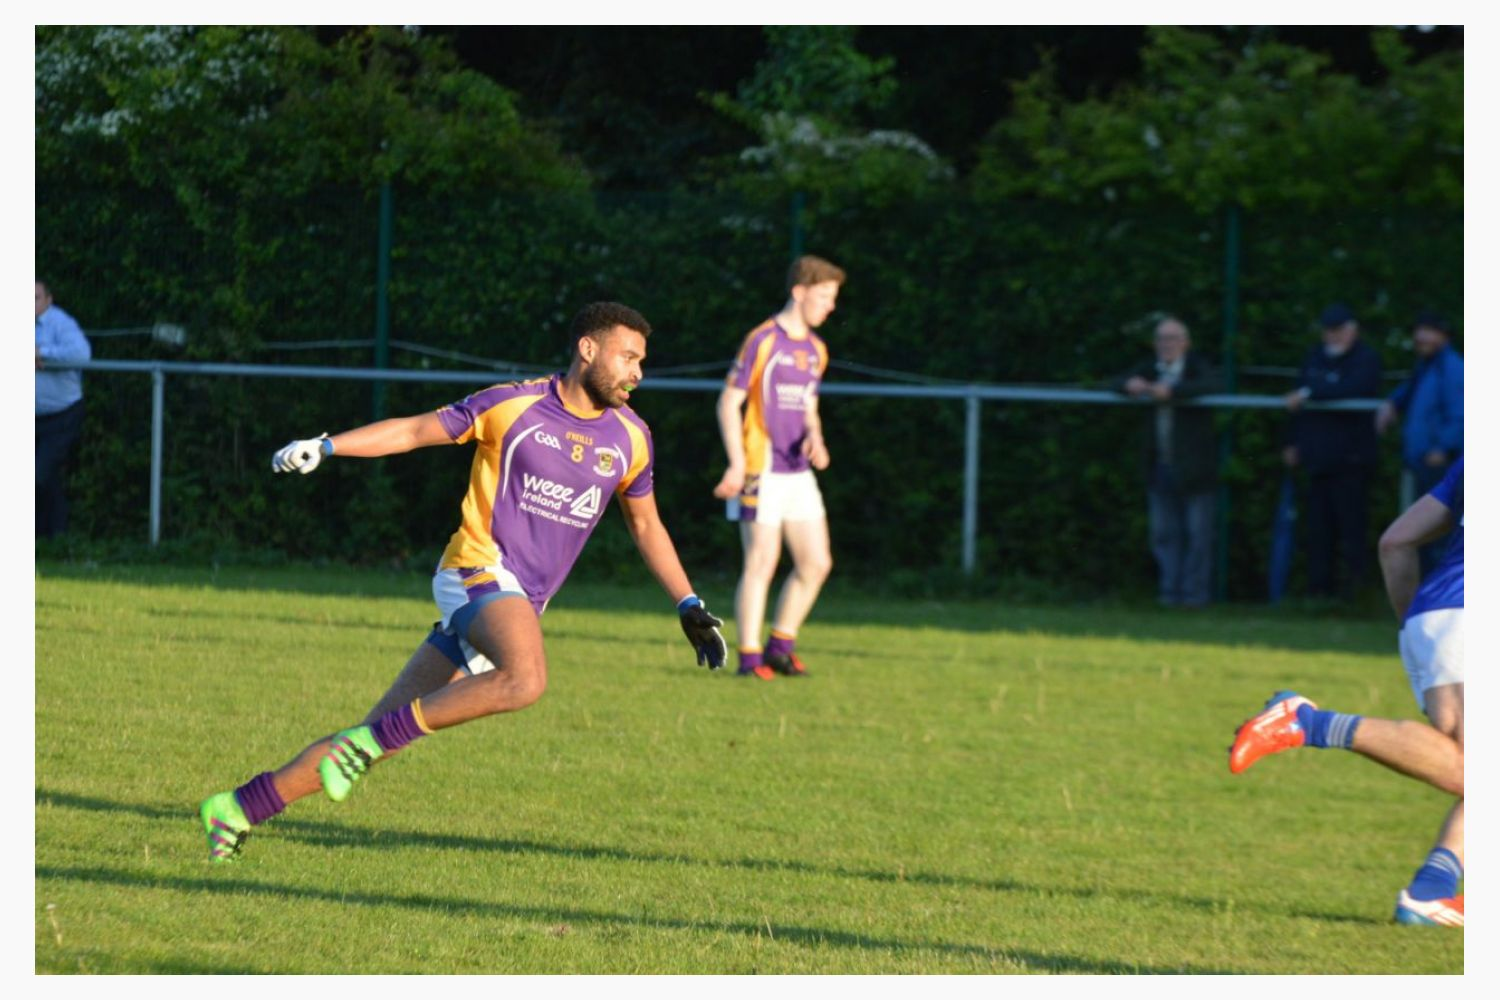 Kilmacud Crokes V Round Towers - Replay